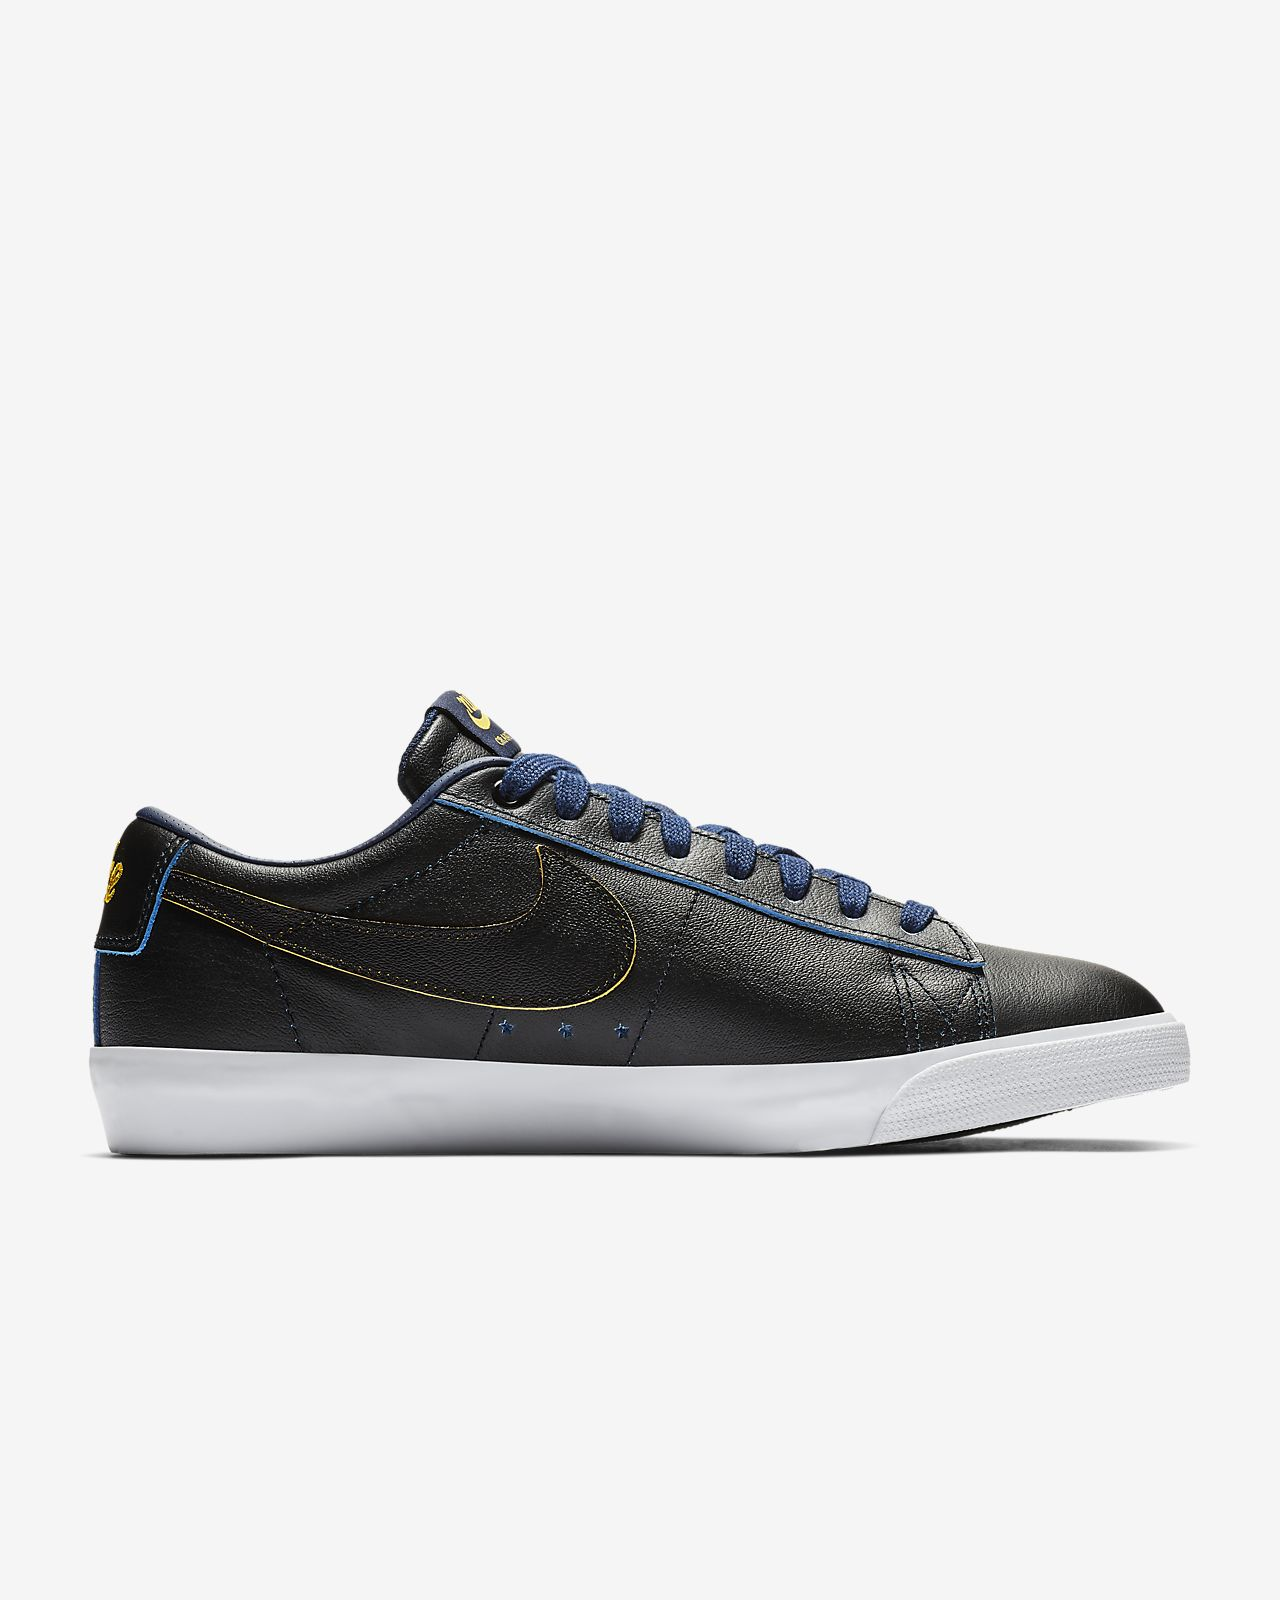 1a92efbc7add4 Nike SB Blazer Low GT NBA Men s Skate Shoe. Nike.com